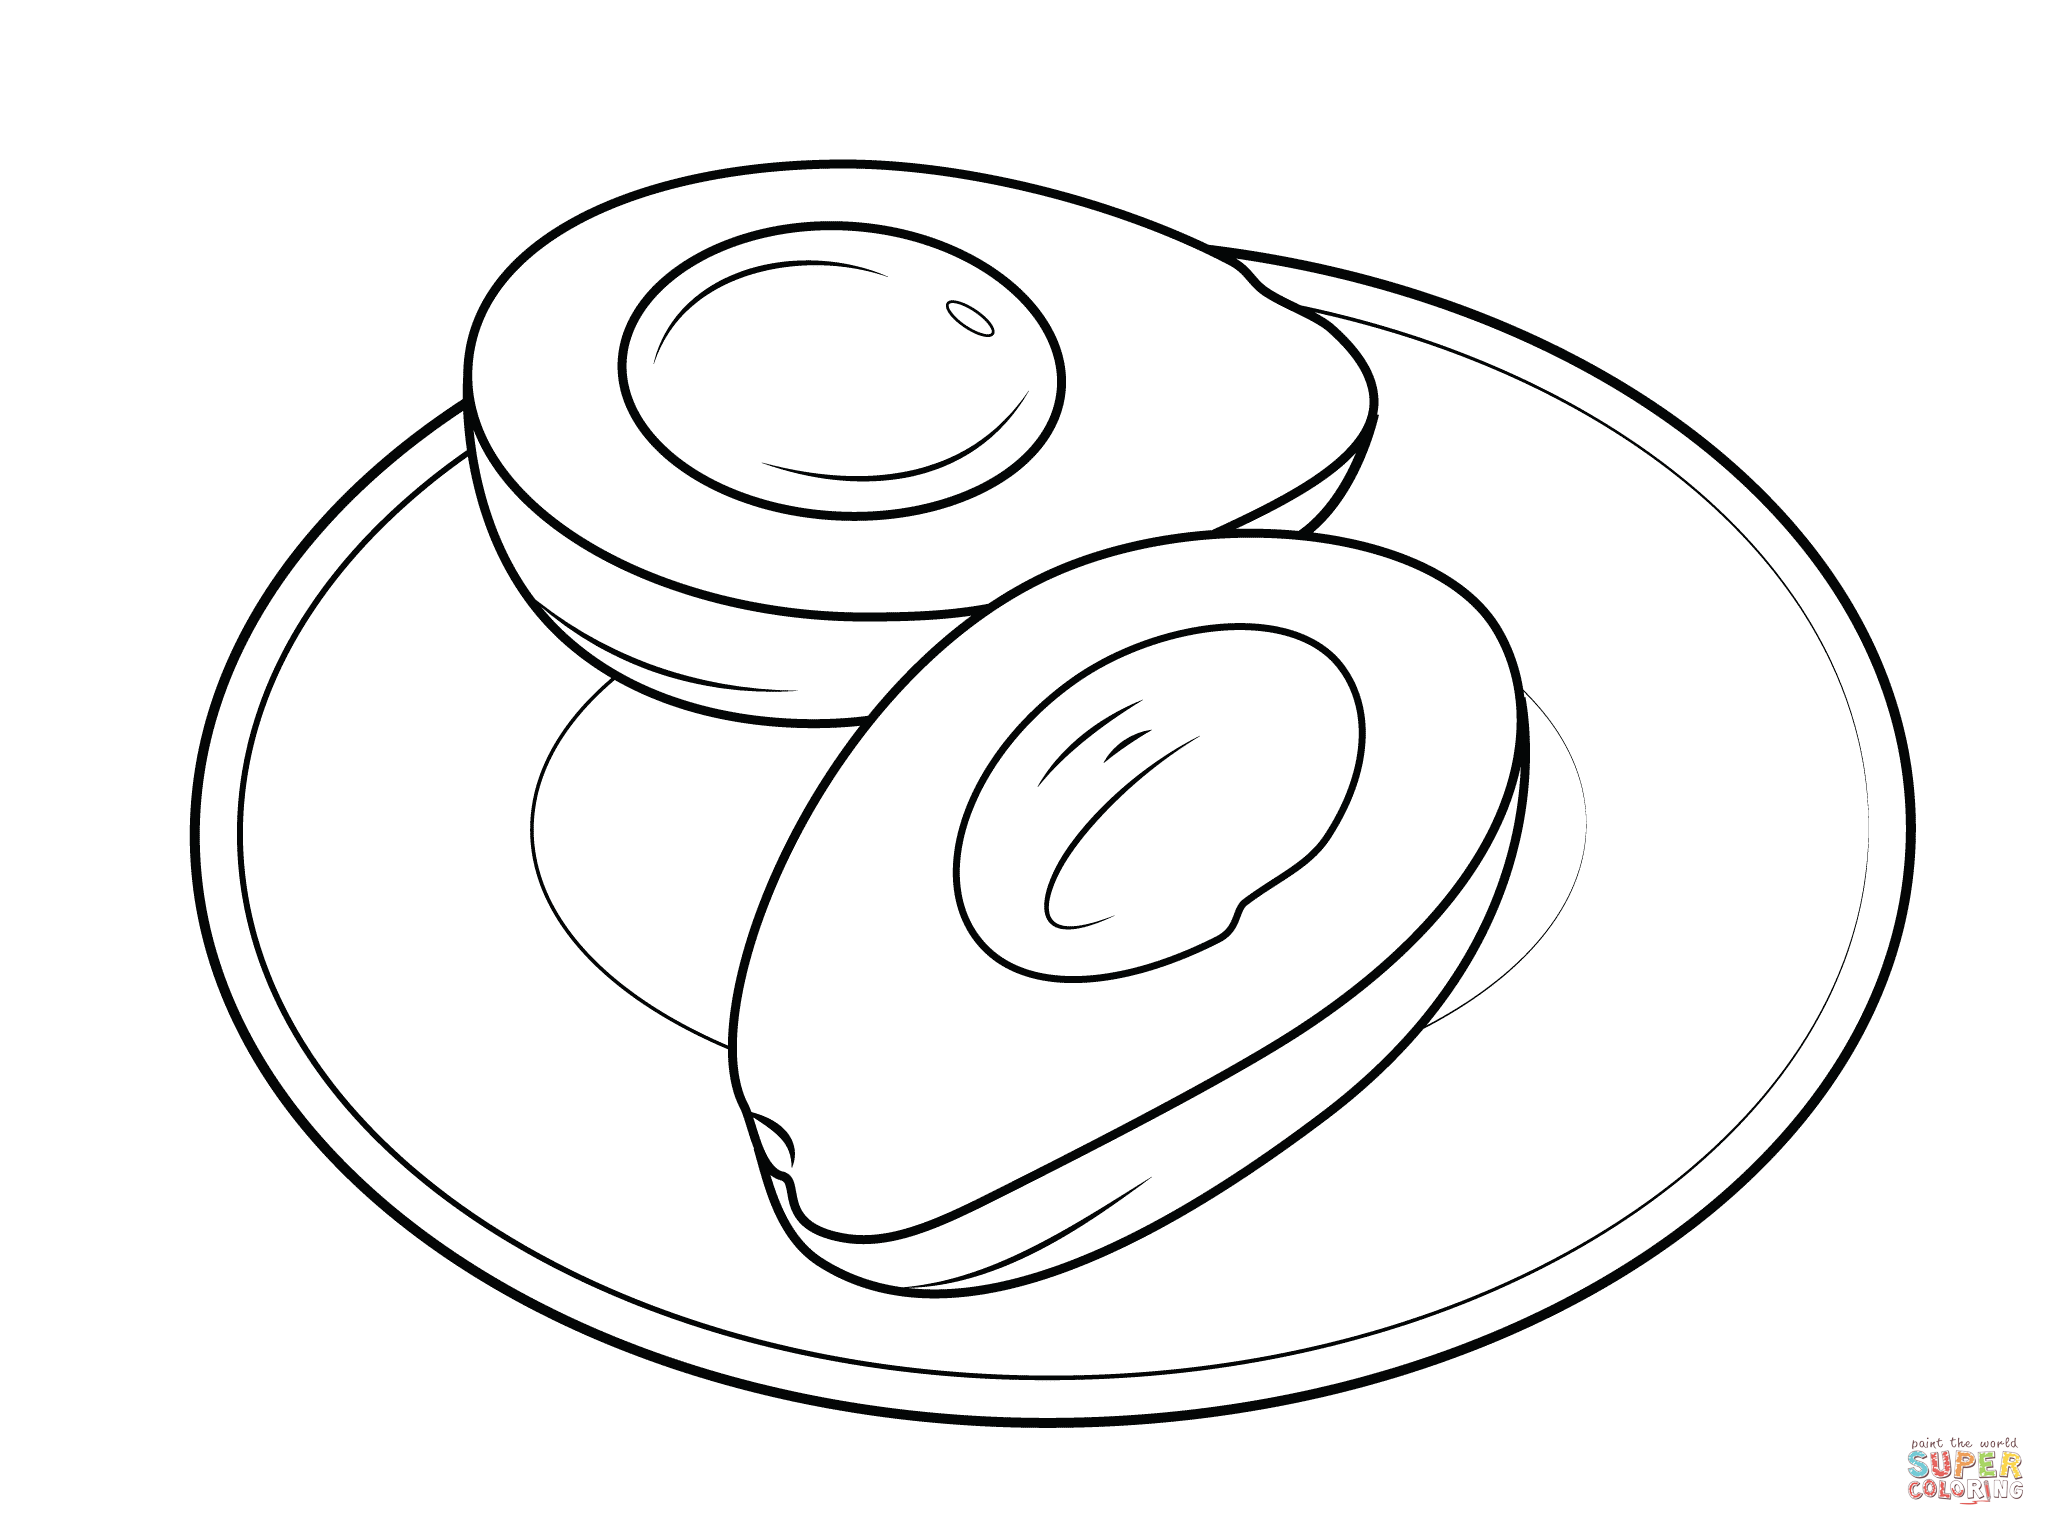 2046x1526 Avocado Coloring Page Free Printable Coloring Pages